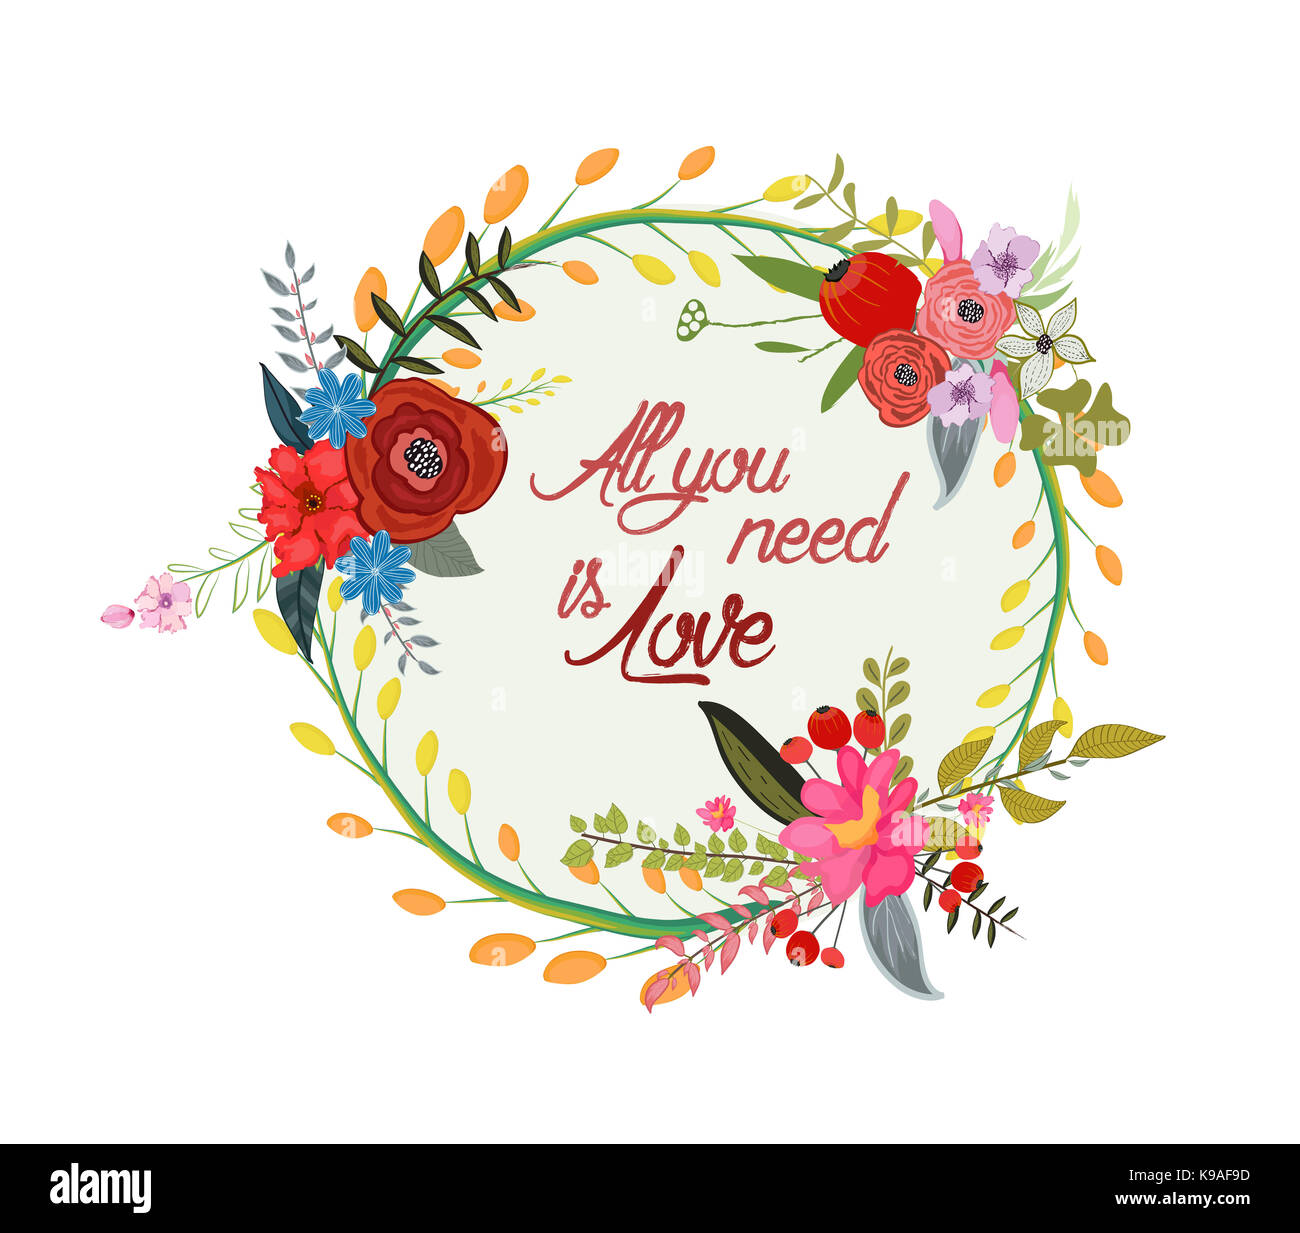 Beautiful Greeting Card Of Wreath And Hand Drawn Letters